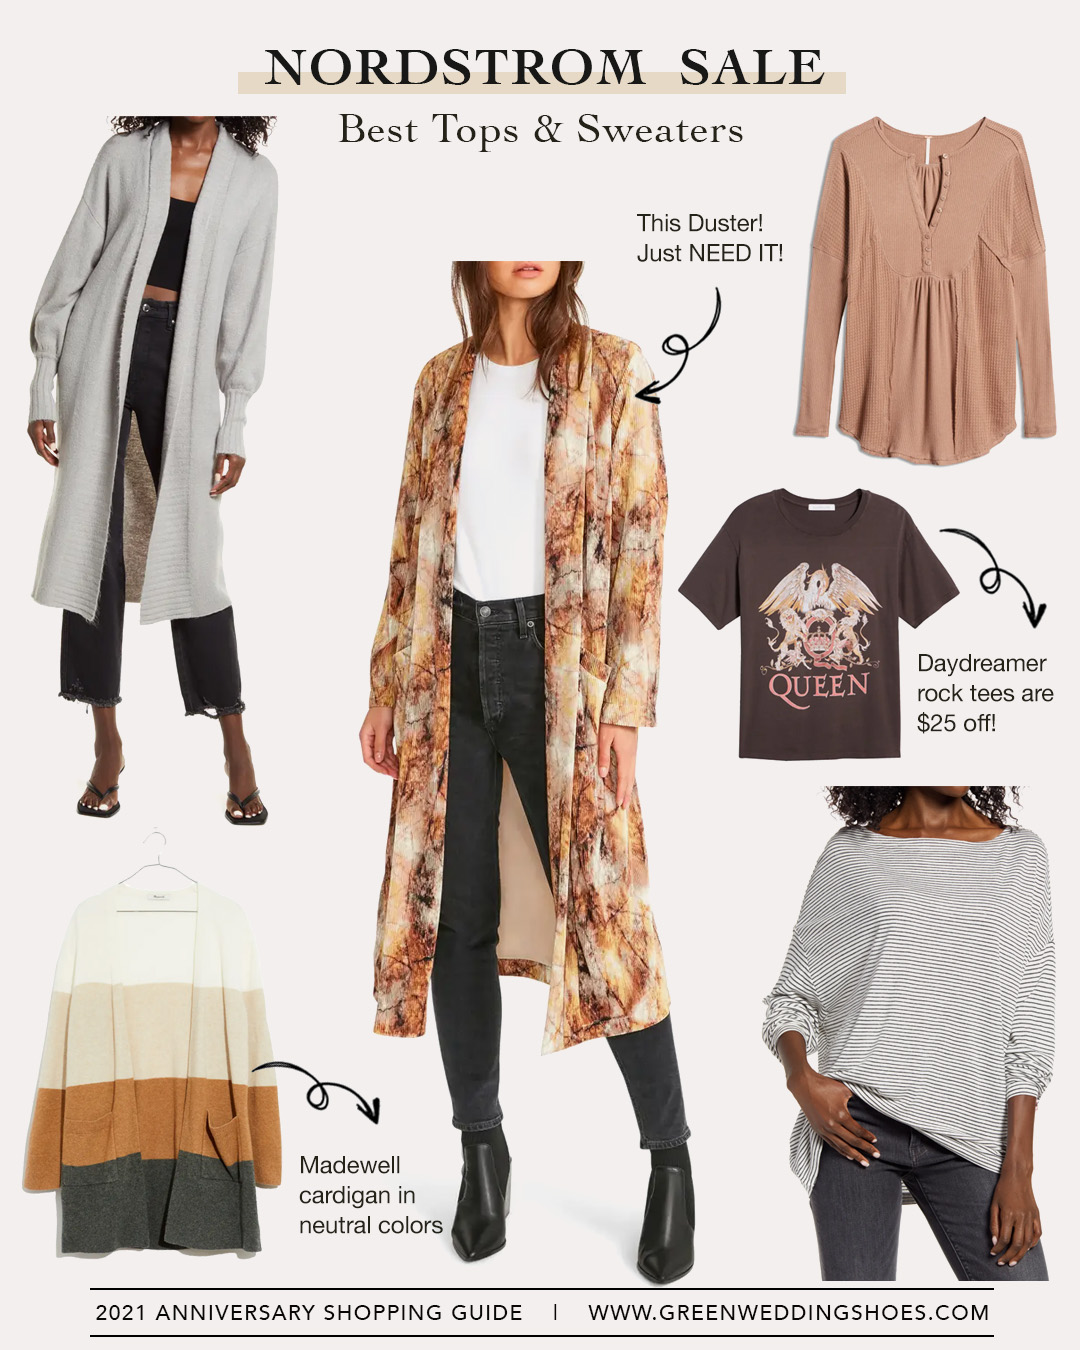 Nordstrom Sale tops and sweaters 2021